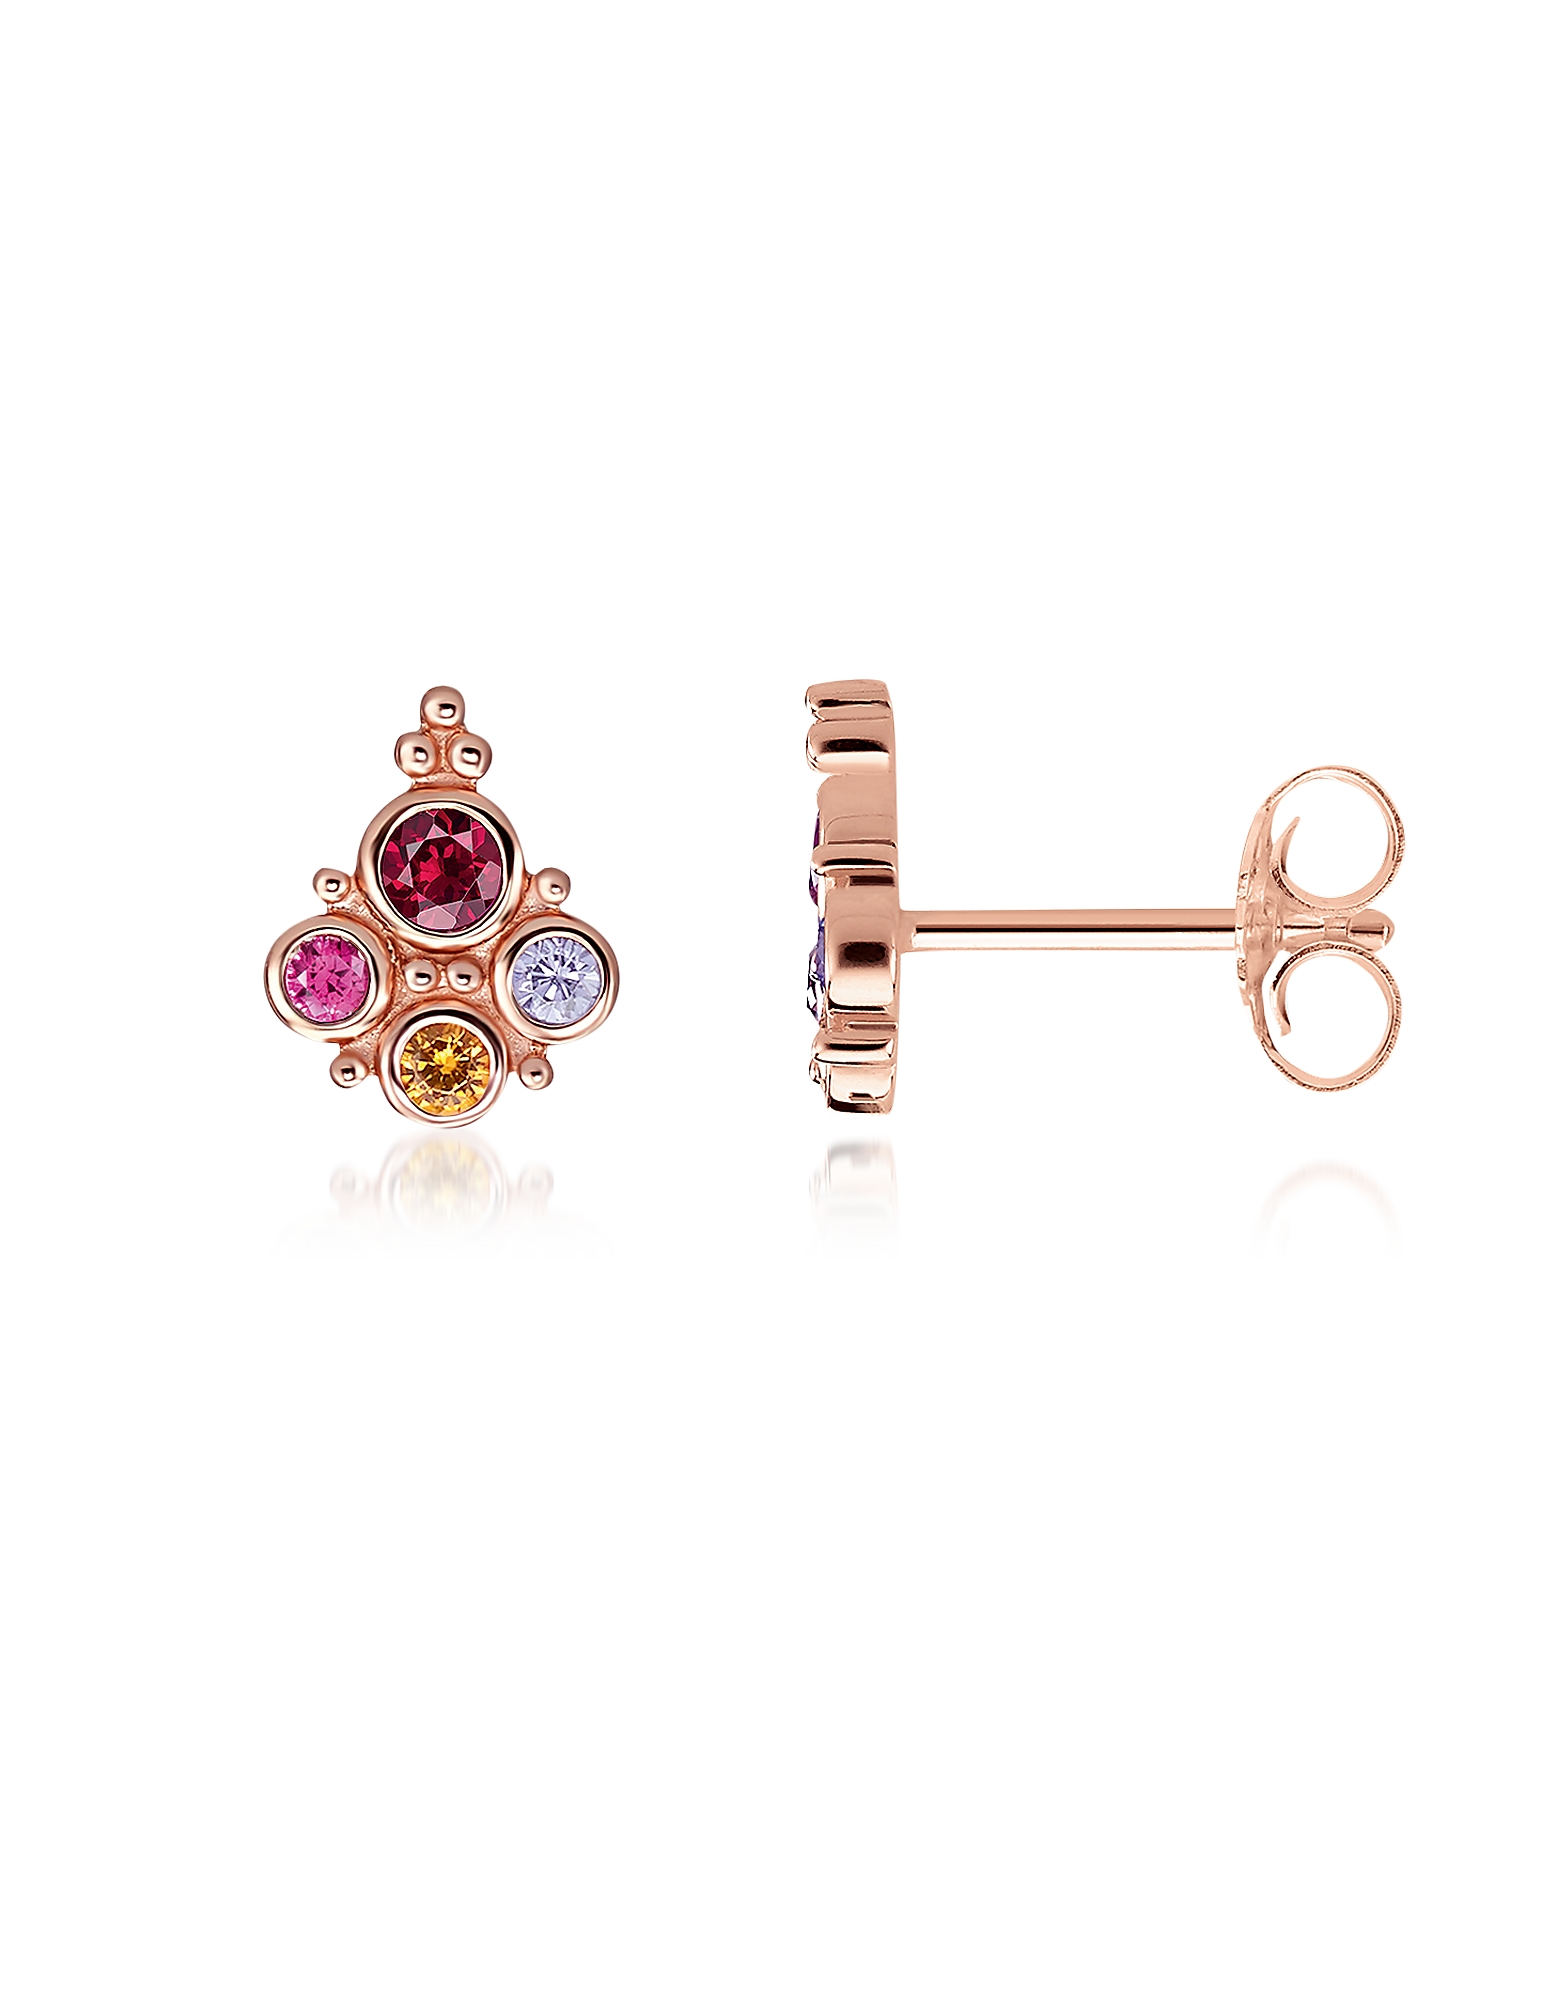 18k Rose Gold Plated Sterling Silver Royalty Colorful Stones Ear studs